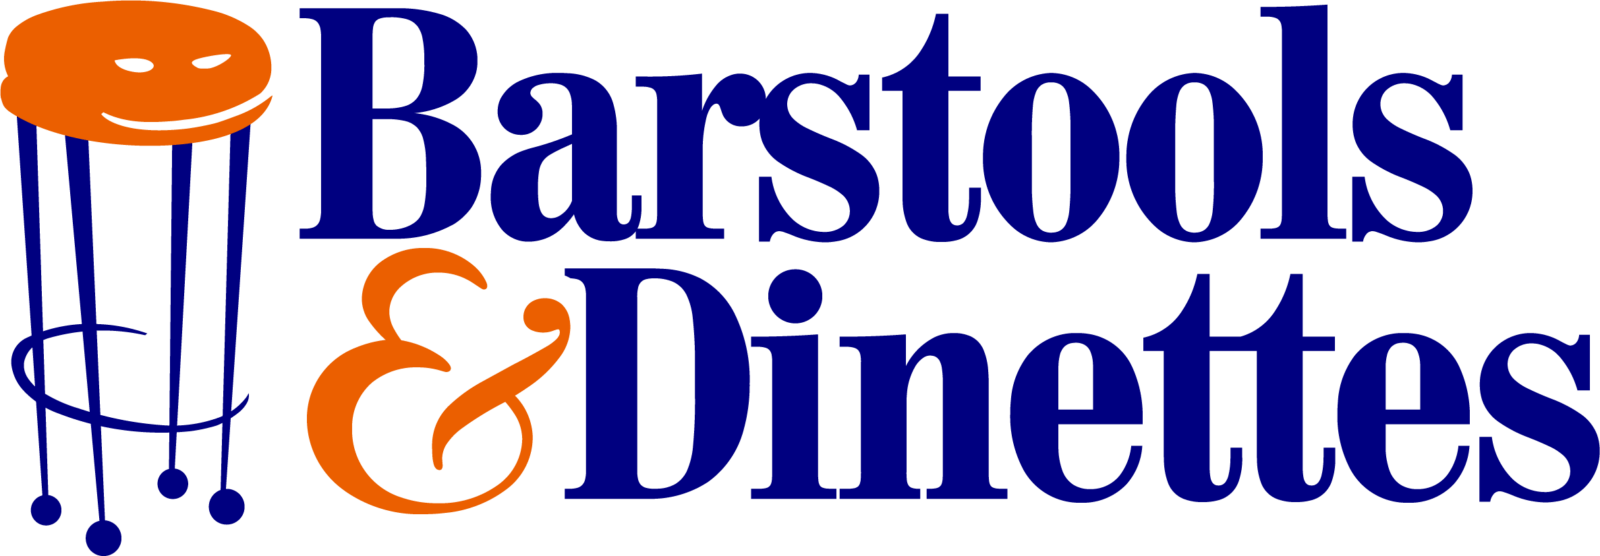 BARSTOOLS AND DINETTES